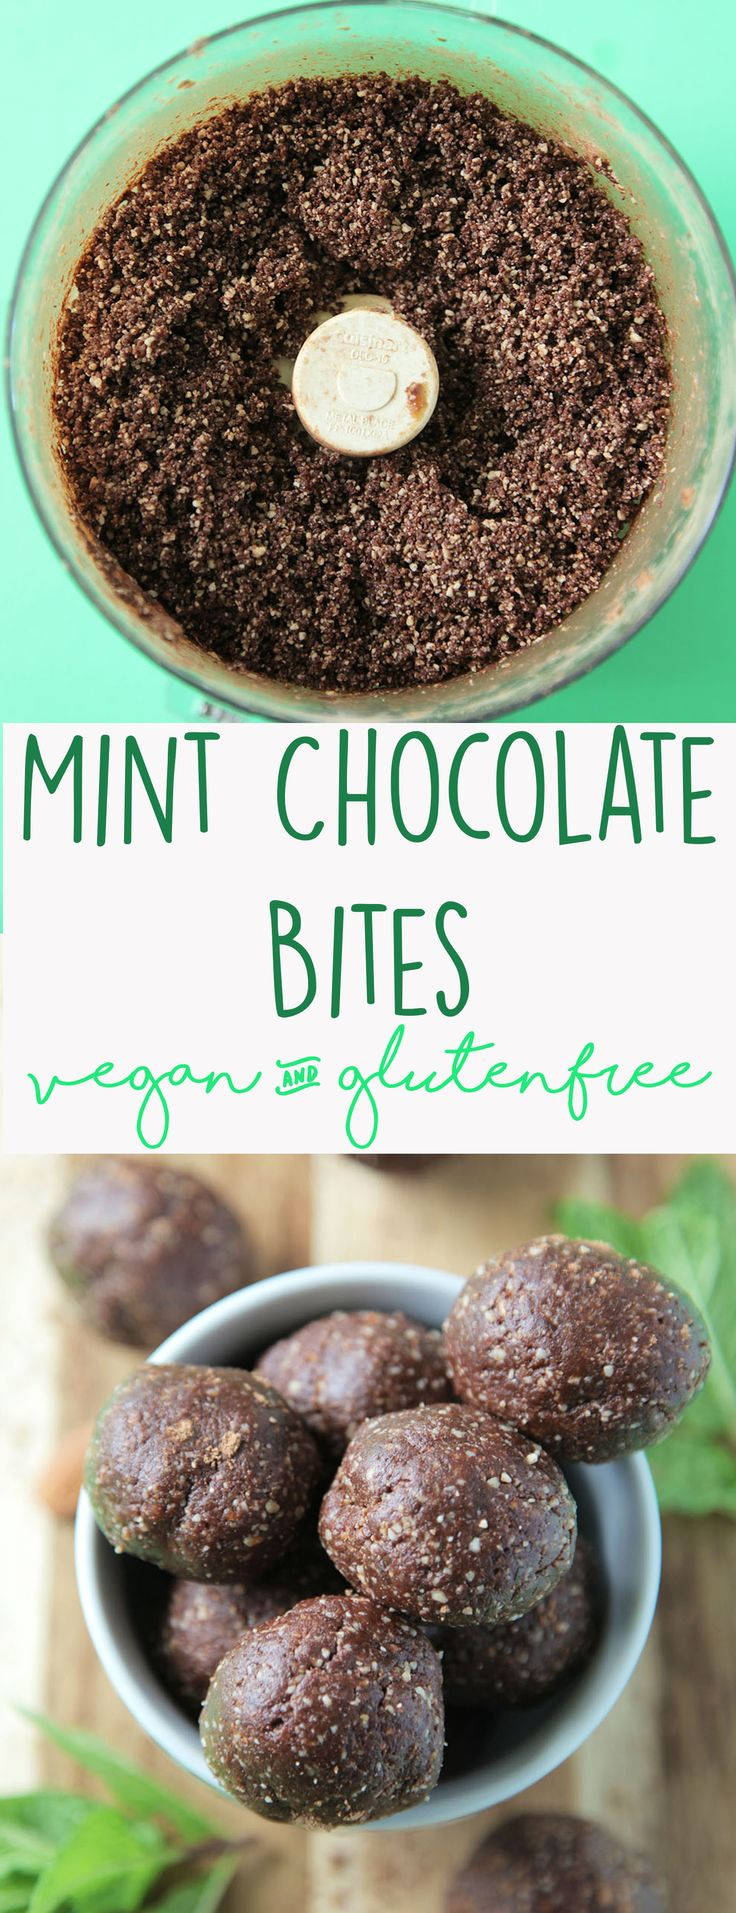 These healthy date and nut balls are naturally sweetened and perfectly flavored with cacao and mint for the perfect afternoon snack!